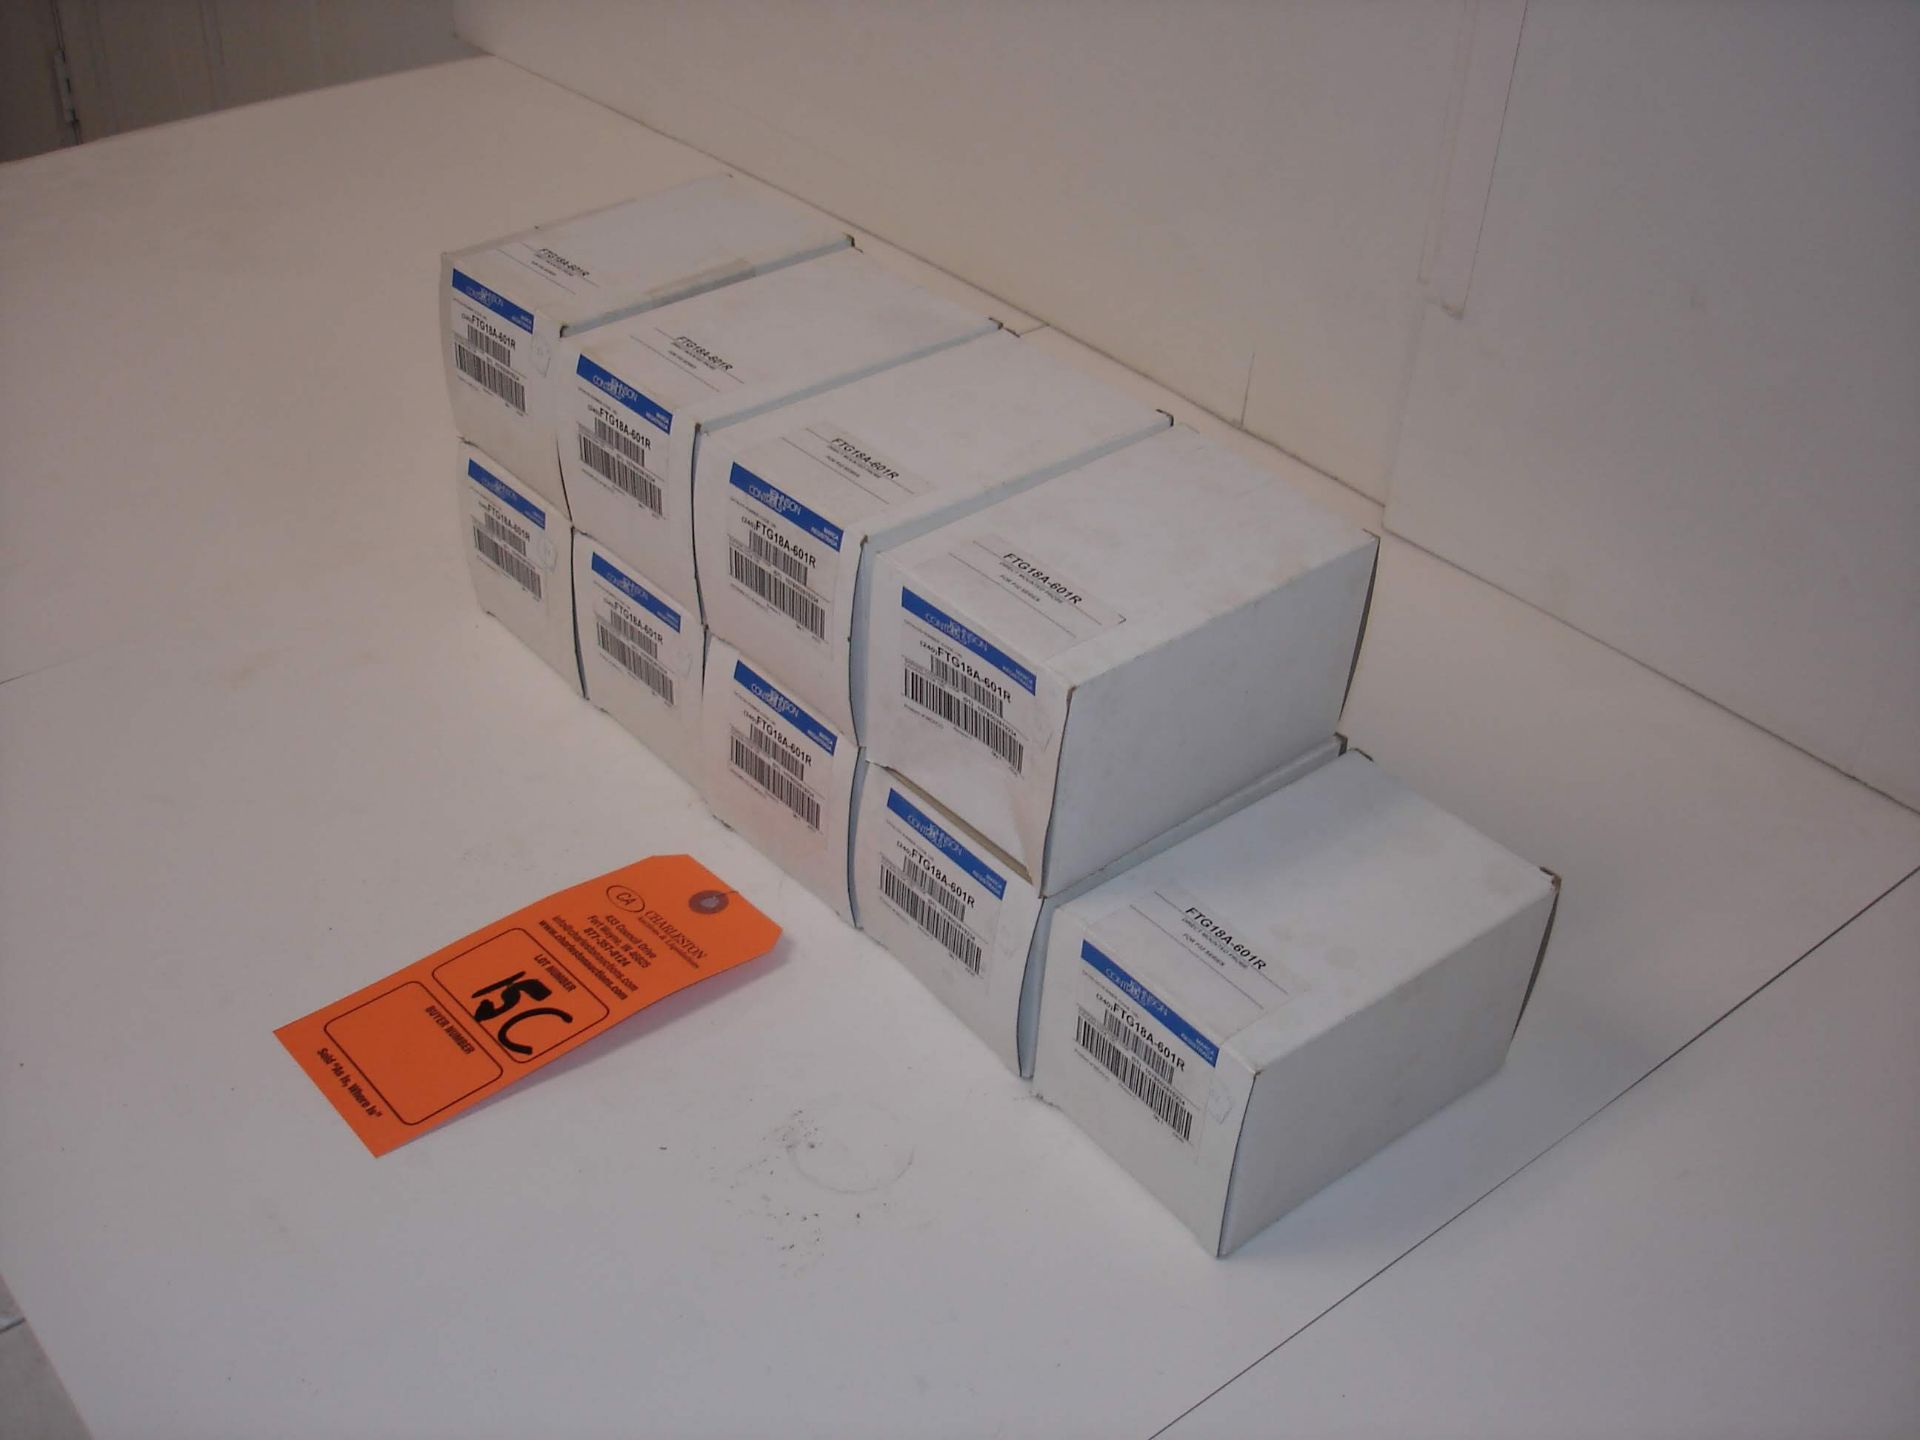 Lot 15C - (9) JOHNSON CONTROLS REPLACEMENT KITS REFER TO PHOTOS!